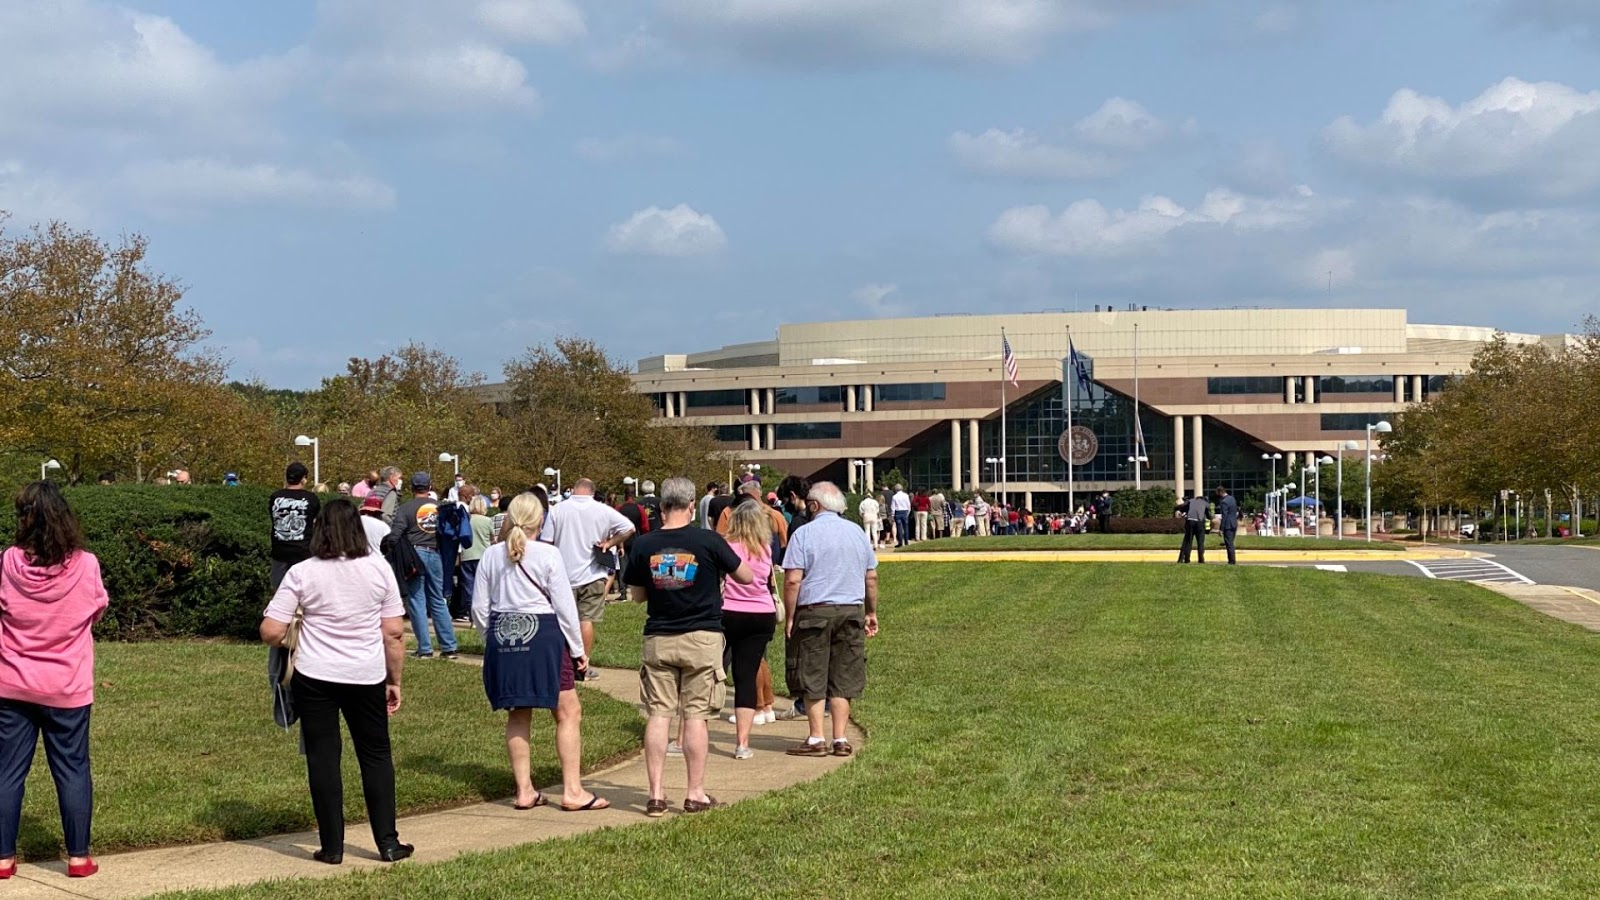 Residents are standing in line to vote in Fairfax County, Virginia, September 2020.